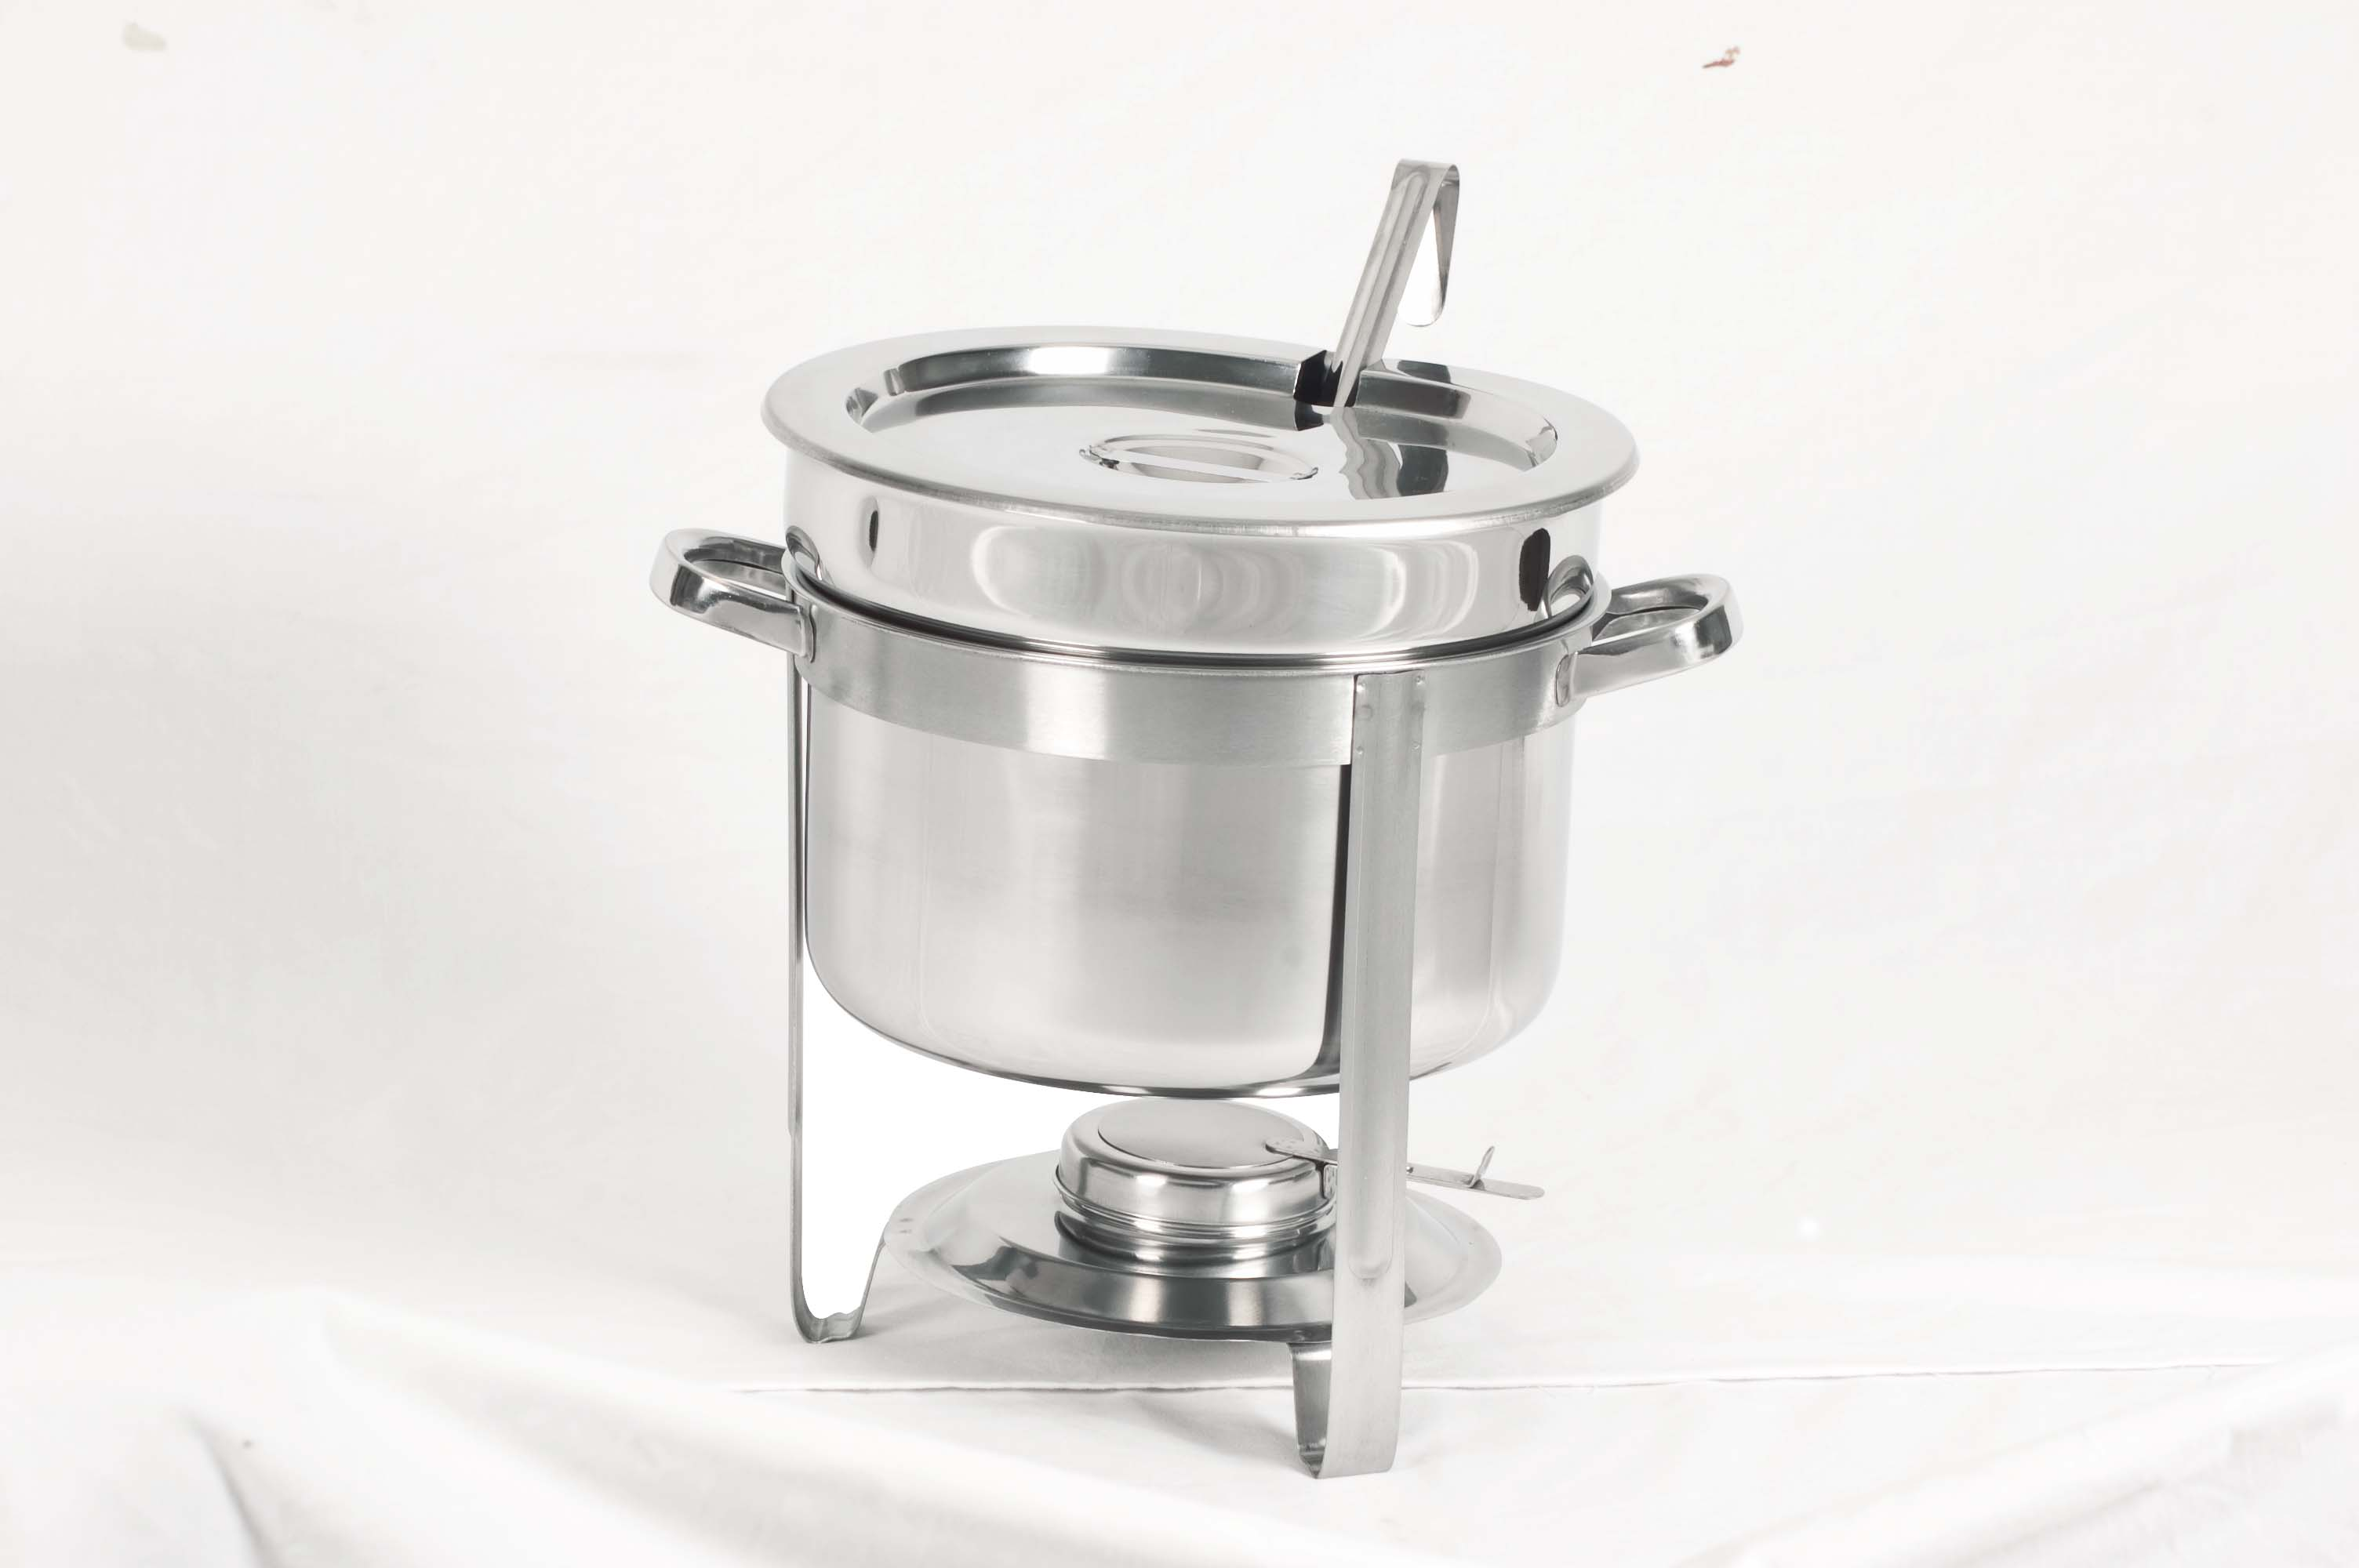 CHAFING DISH S/STEEL- SOUP STATION 9Lt